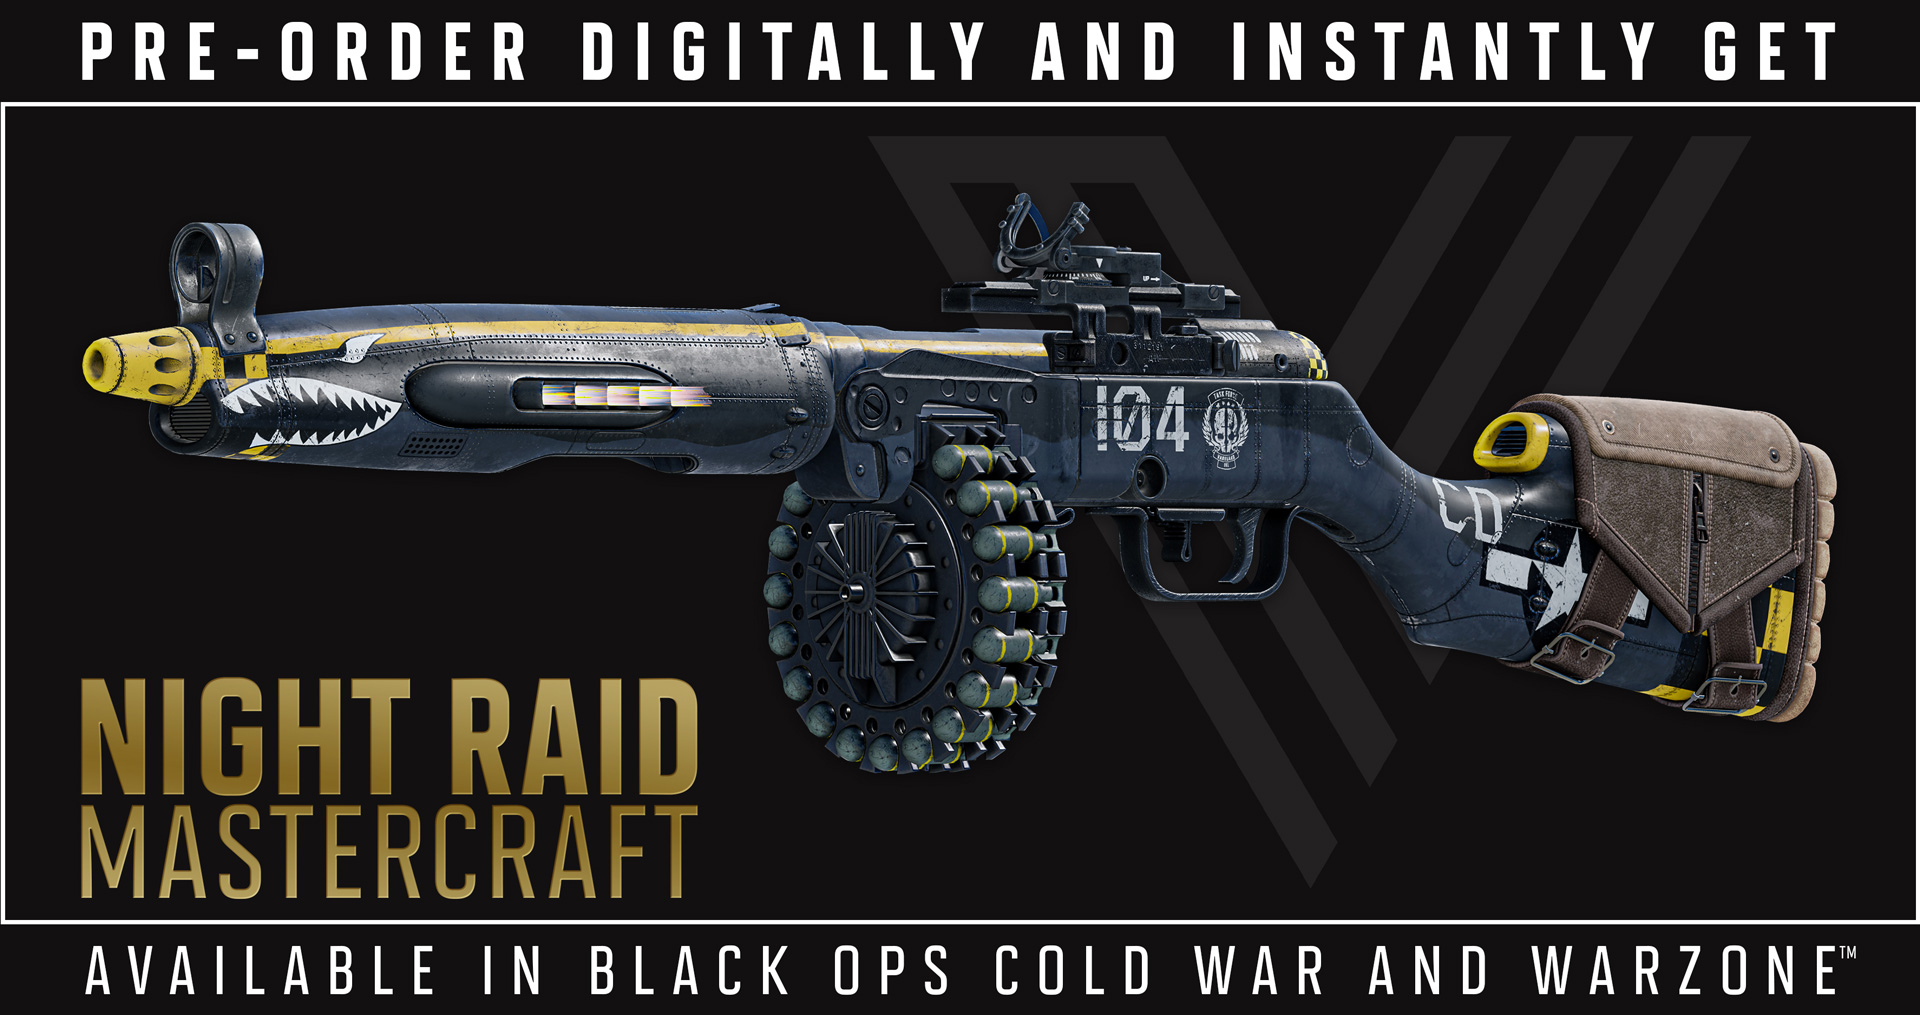 The Night Raid Mastercraft weapon in all its glory